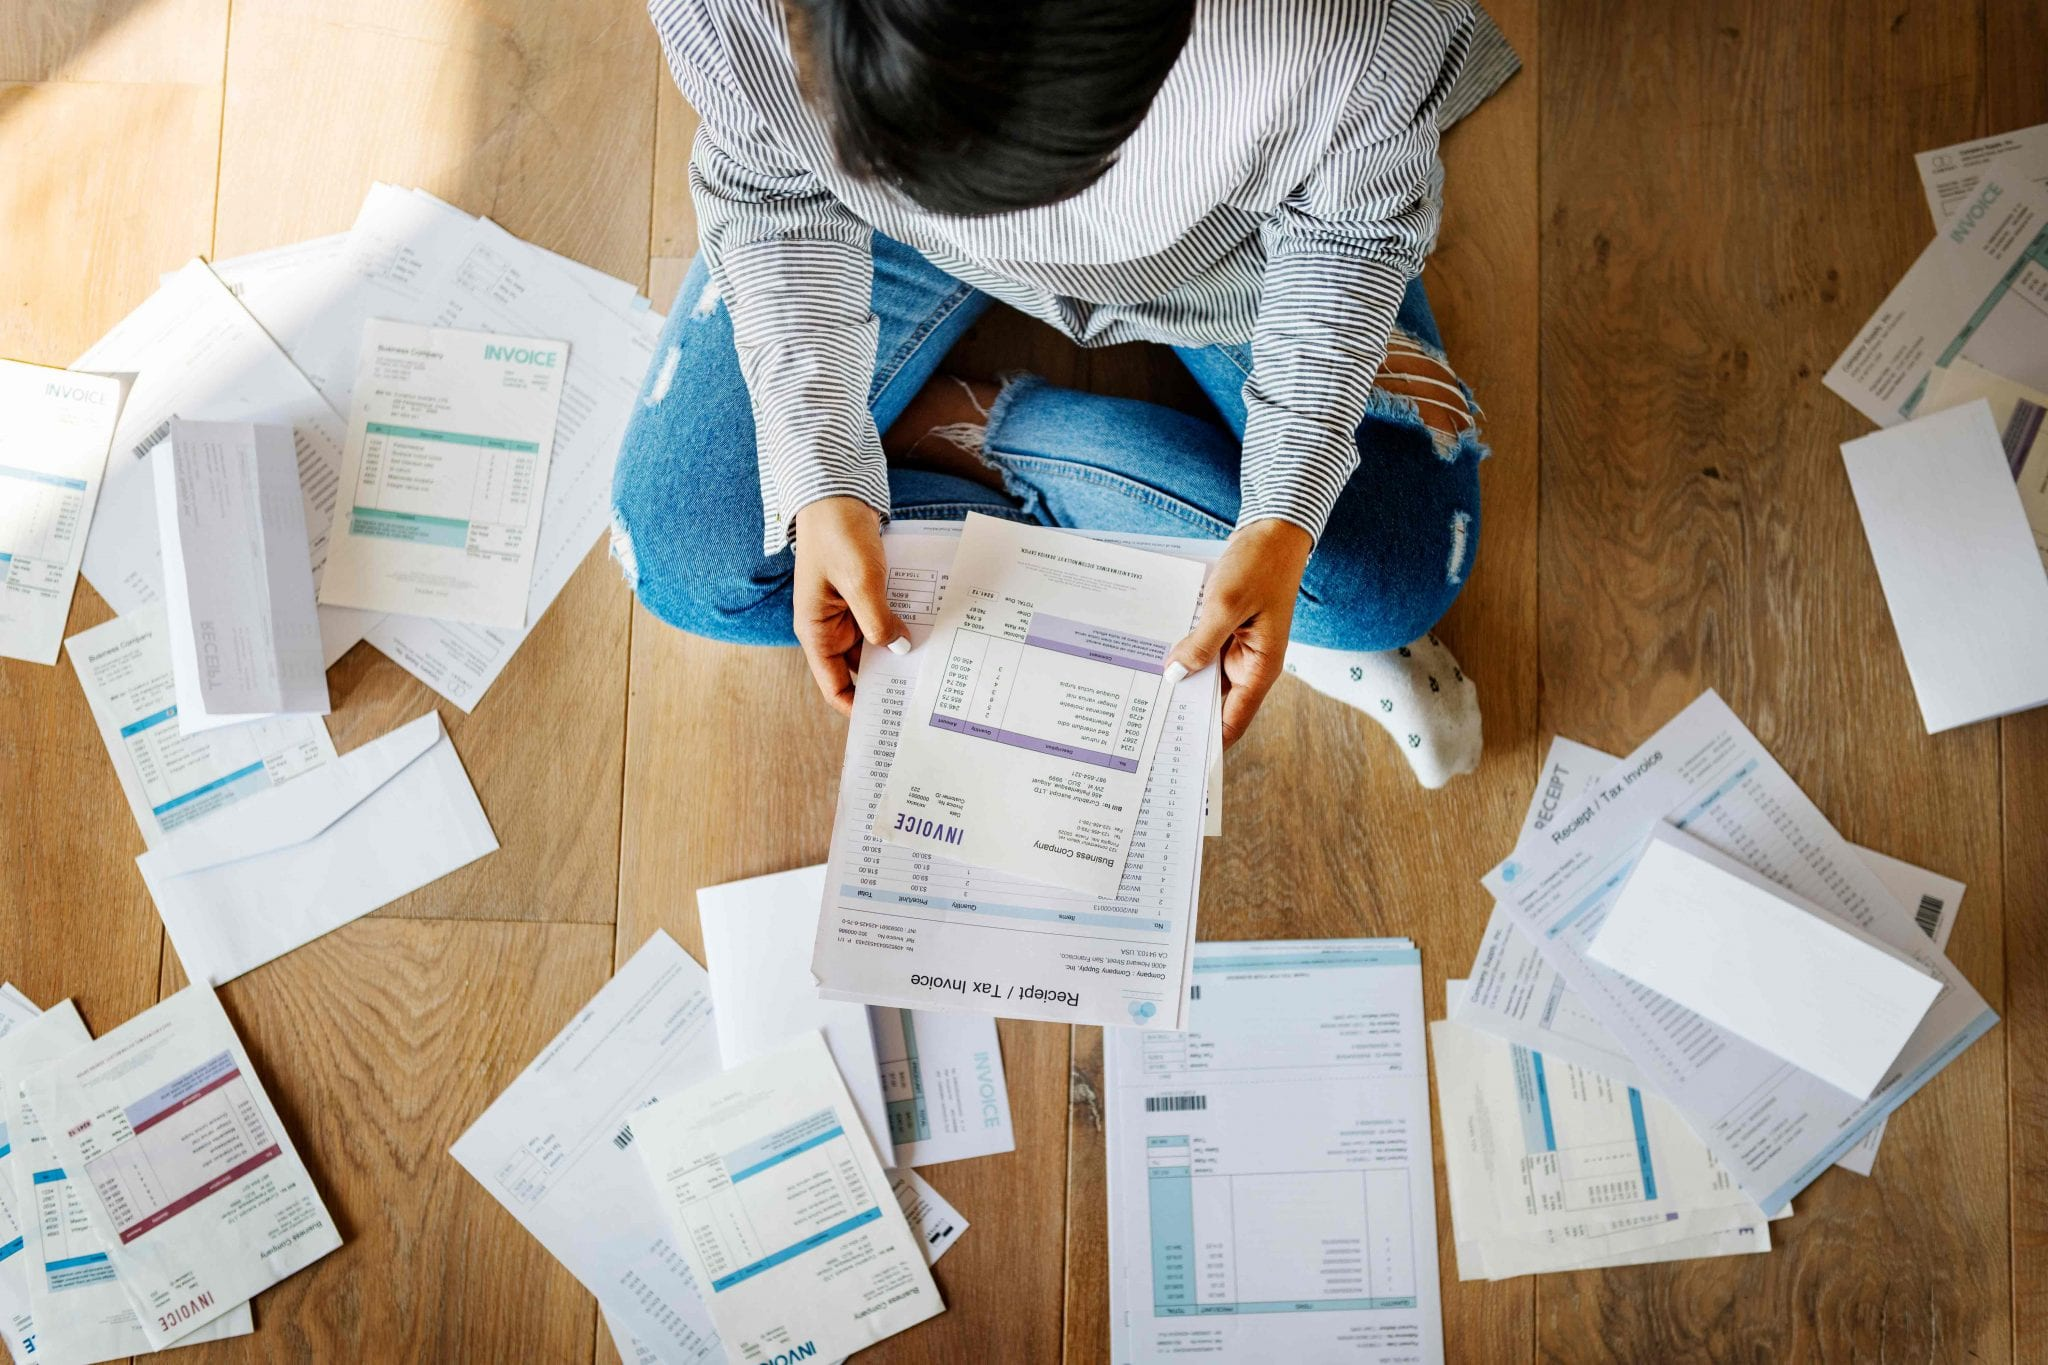 FDCPA Regulations for Debt Collecting